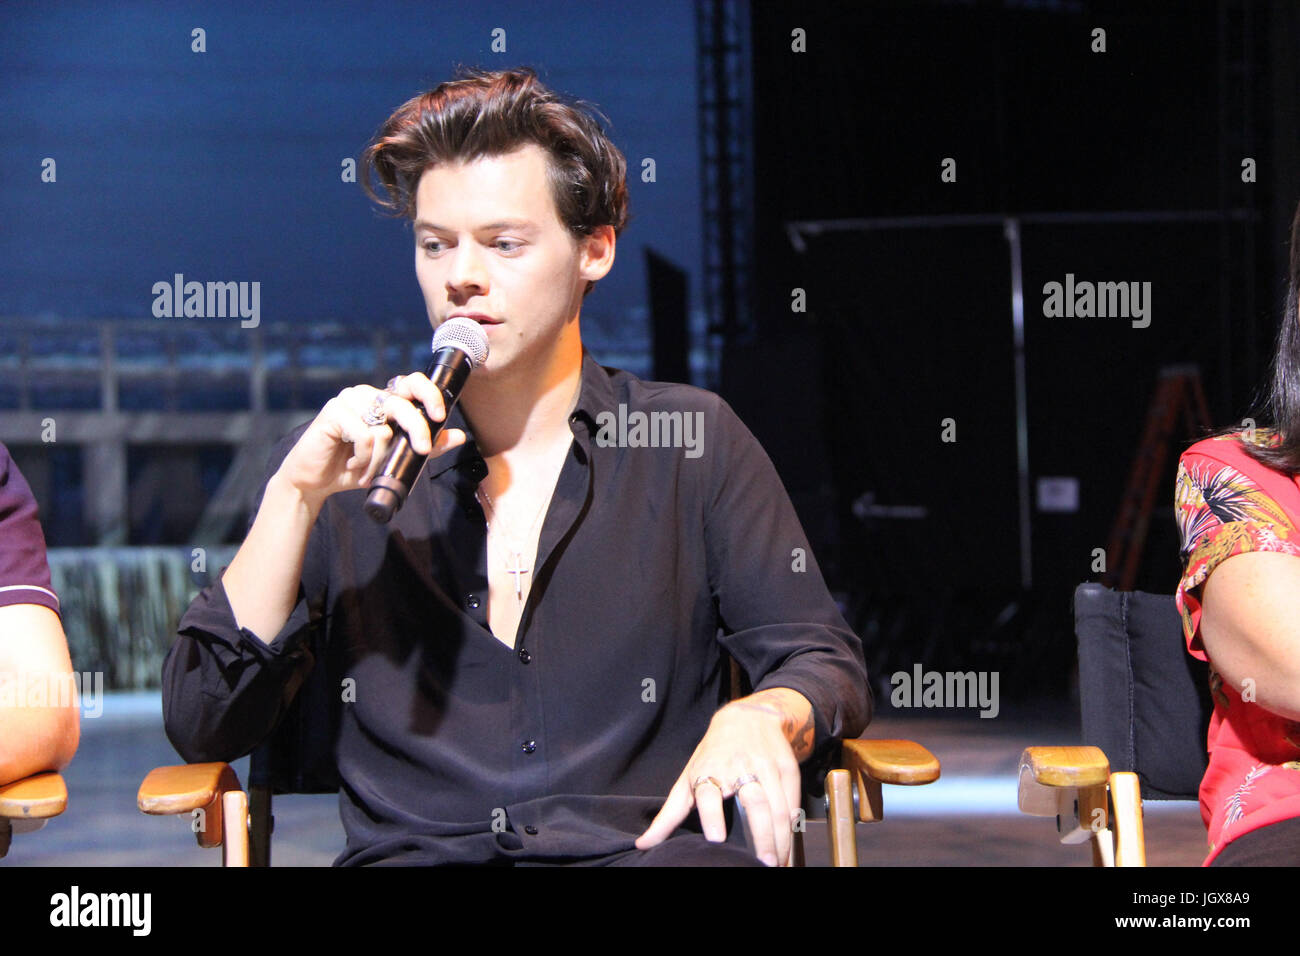 Harry styles 07/09/2017 unkirk «' conférence de presse tenue au barker hangar à Santa Monica, Photo Stock